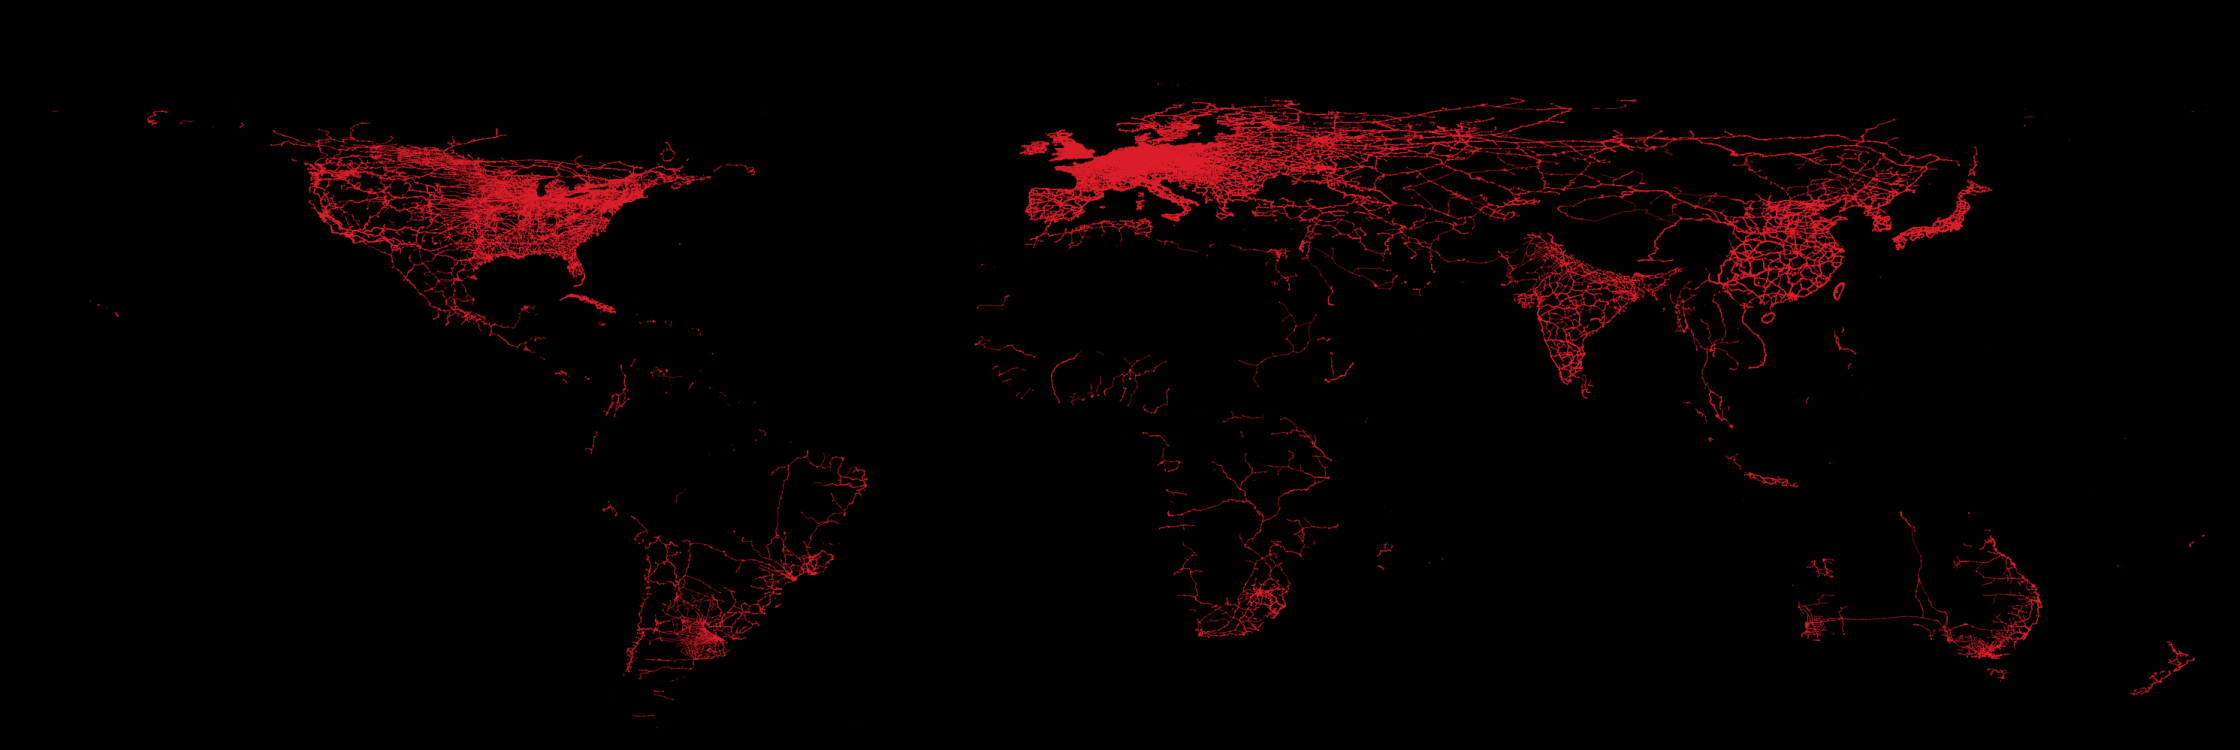 railway network of the world